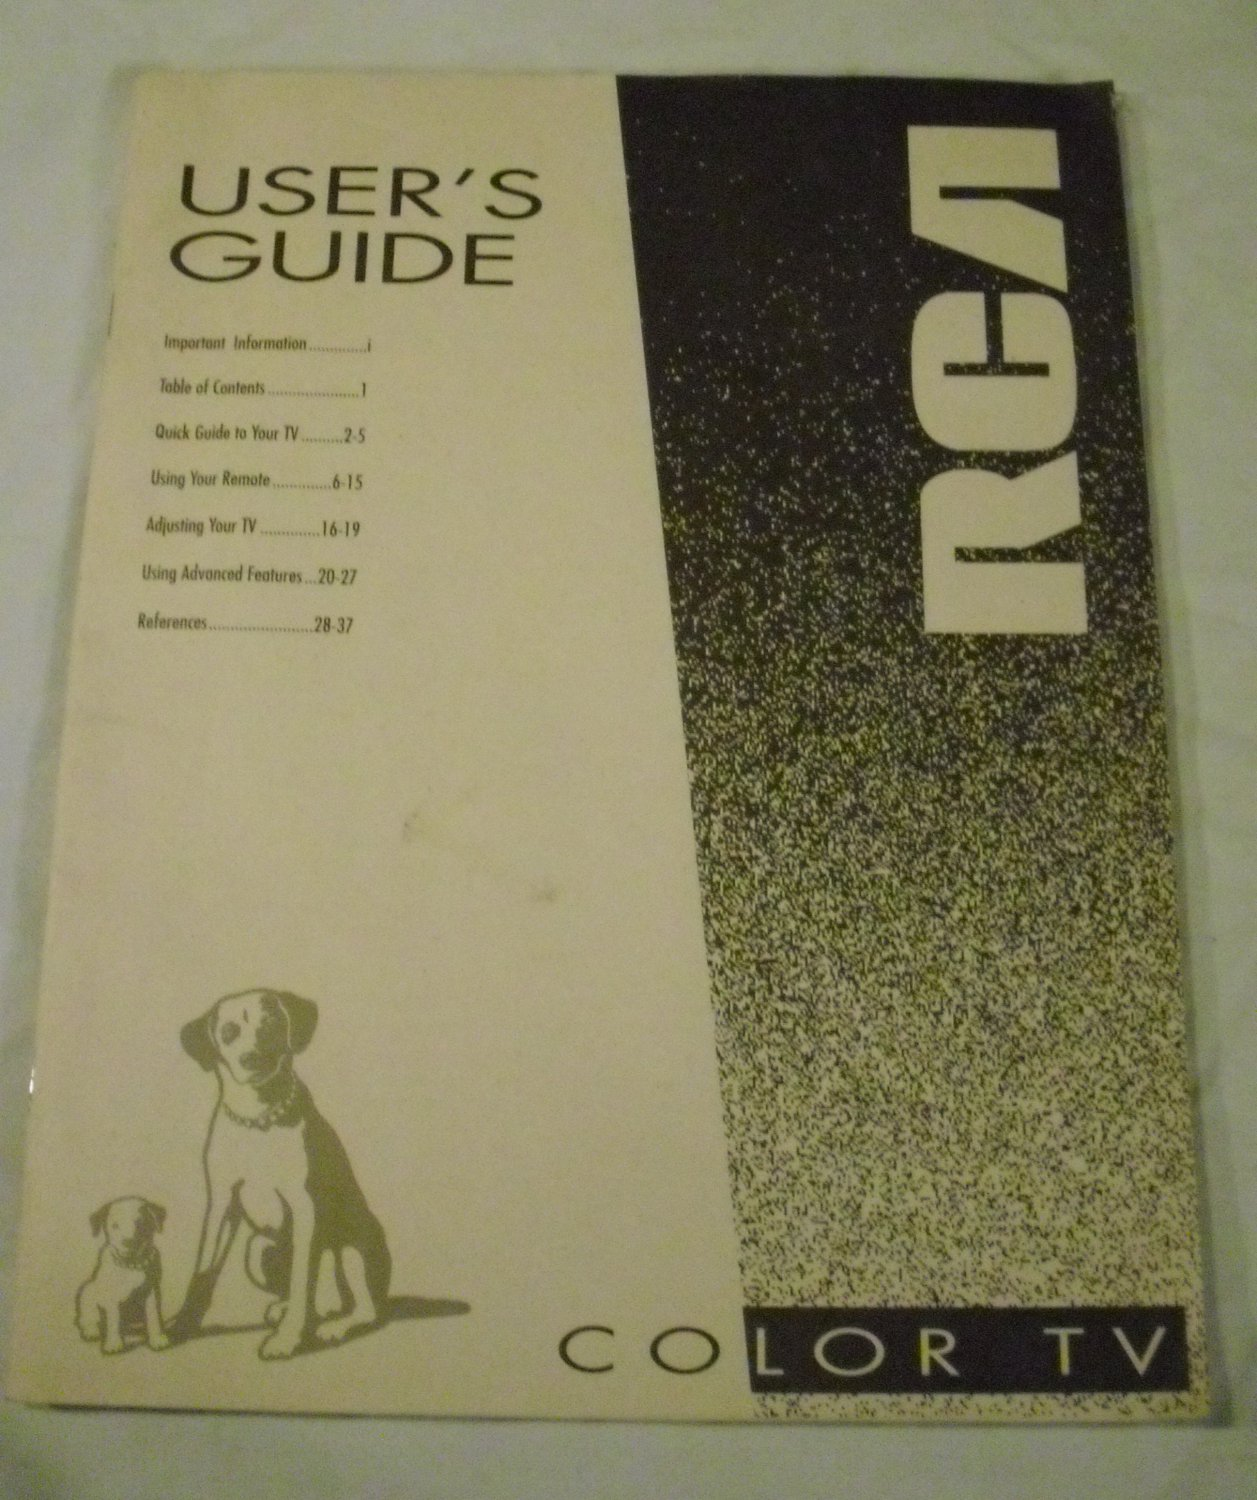 User's Guide 1994 RCA Color TV Manual Thomson Consumer Electronics, Inc.